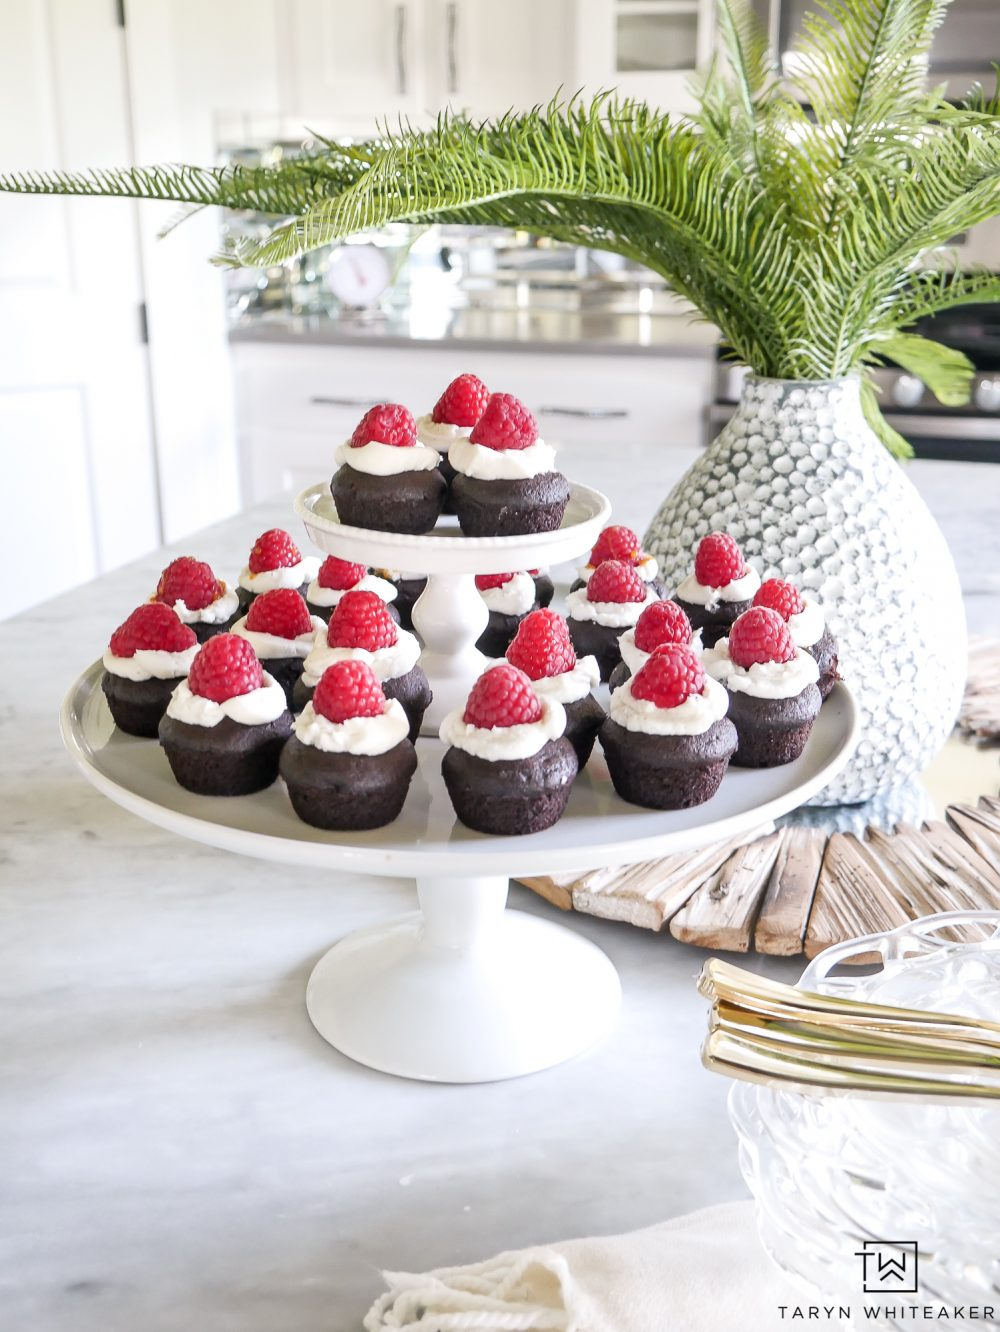 Easy Mini Chocolate Cupcakes With Caramel Filling and raspberries on top! Super simple recipe for bite size desserts!